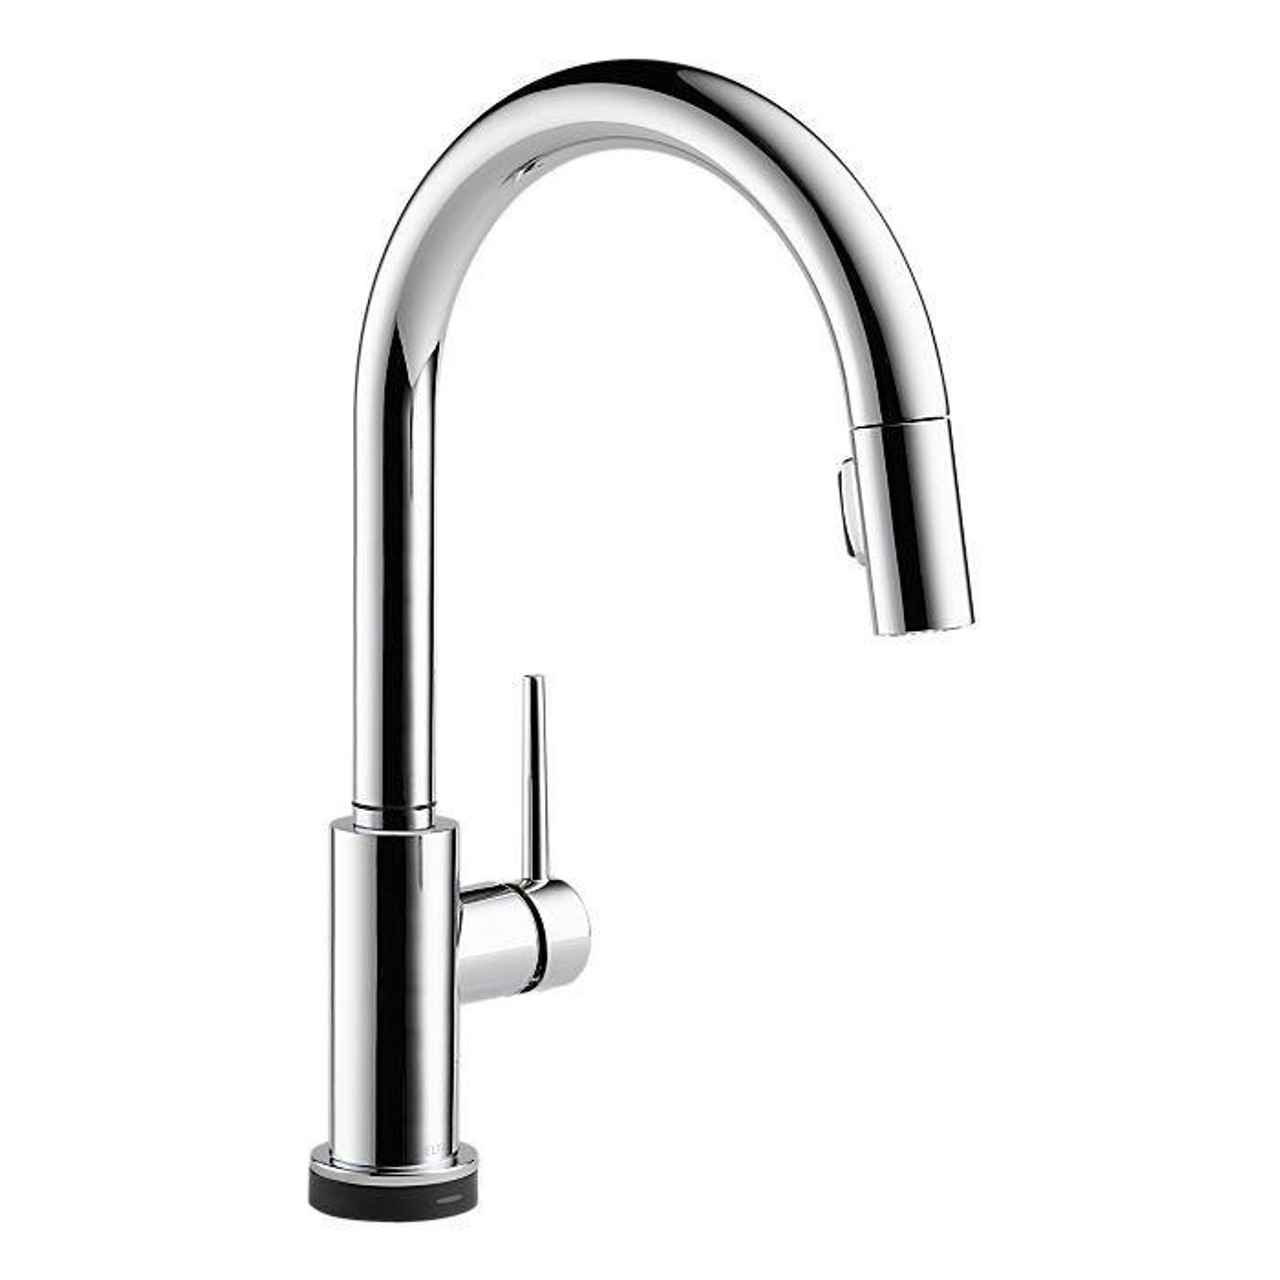 DELTA 9159T DST TRINSIC TOUCH KITCHEN FAUCET WITH PULLDOWN SPRAY   CHROME